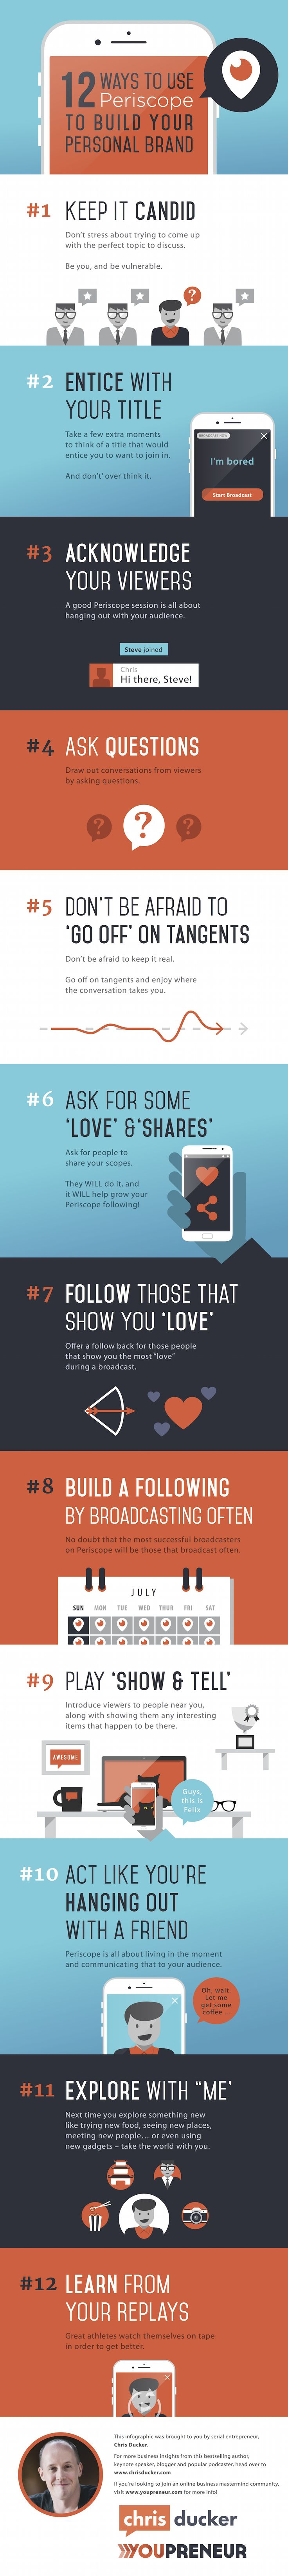 12 ways to use PERISCOPE to build your personal brand by @Chris Ducker.  He's great person to follow